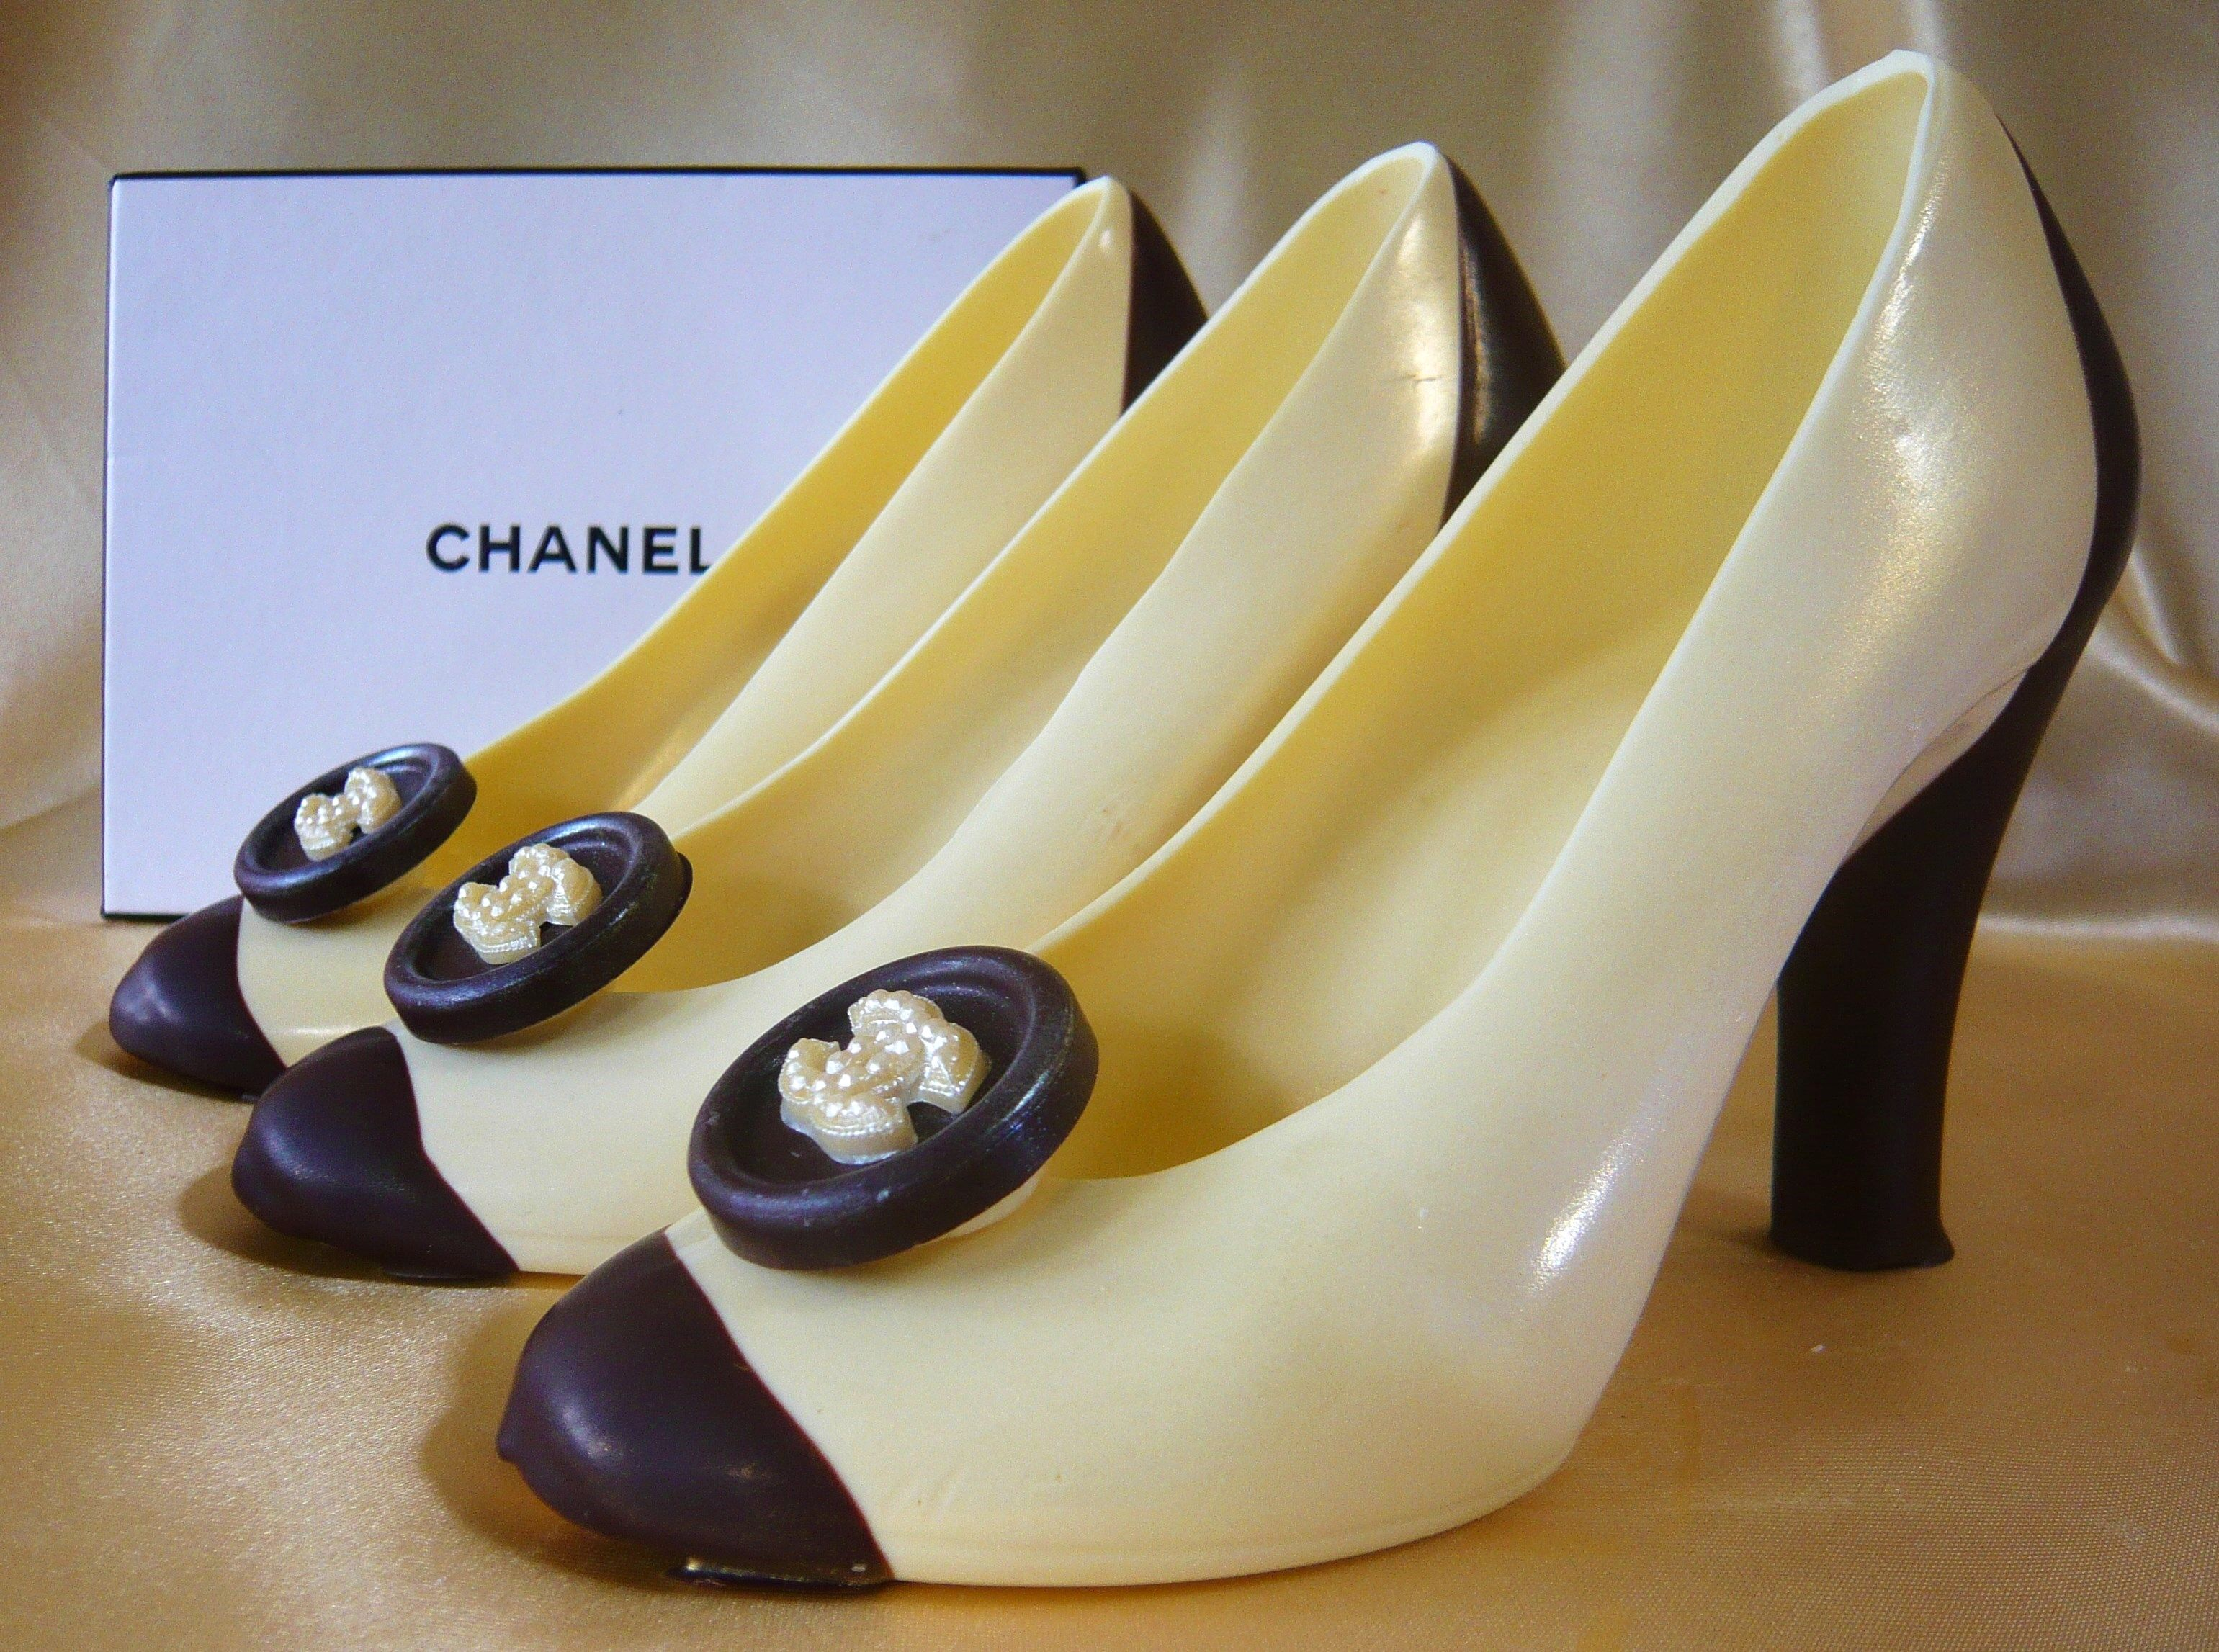 Chanel Inspired Chocolate Stiletto Shoes Heels From Cathryn Cariad Chocolates Www Cathryncariad Com Chocolate Shoe Stiletto Shoes Chanel Inspired